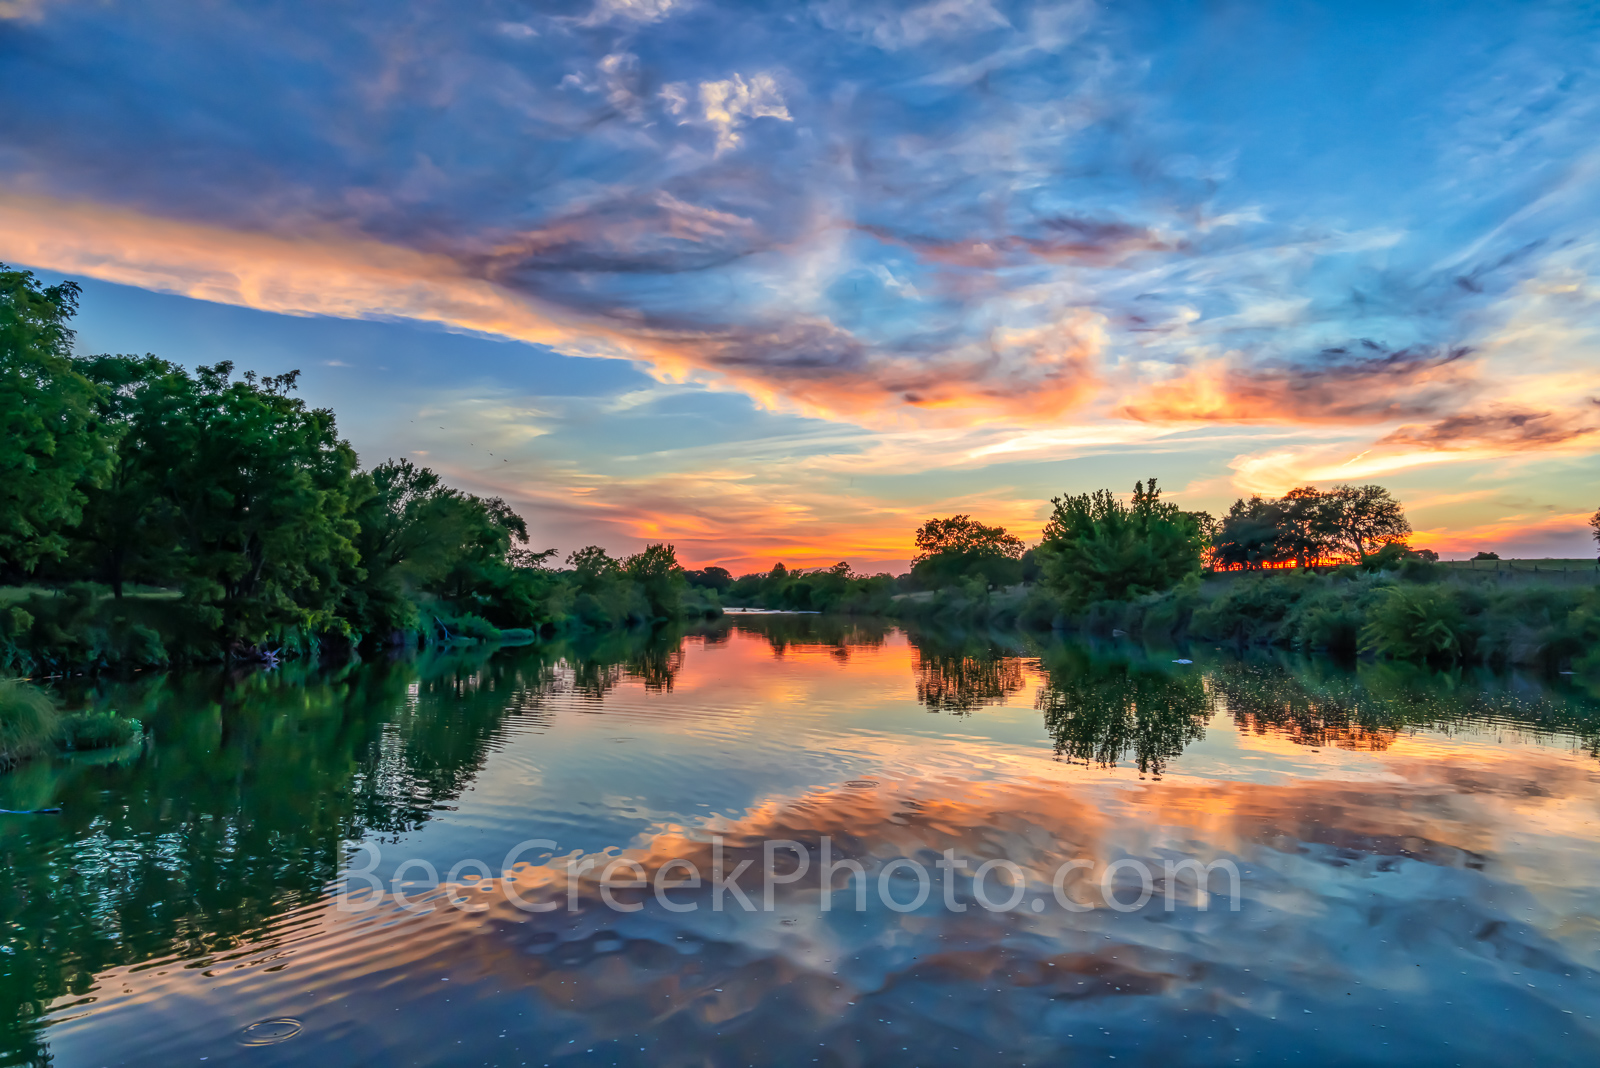 Texas Hill Country Sunset, Texas Hill country, sunset, Pedernales river, landscape, water, river, trees, rurals, Colorado river, centrral texas, hill country, Texas. rural,LBJ Ranch, Johnson City, , photo